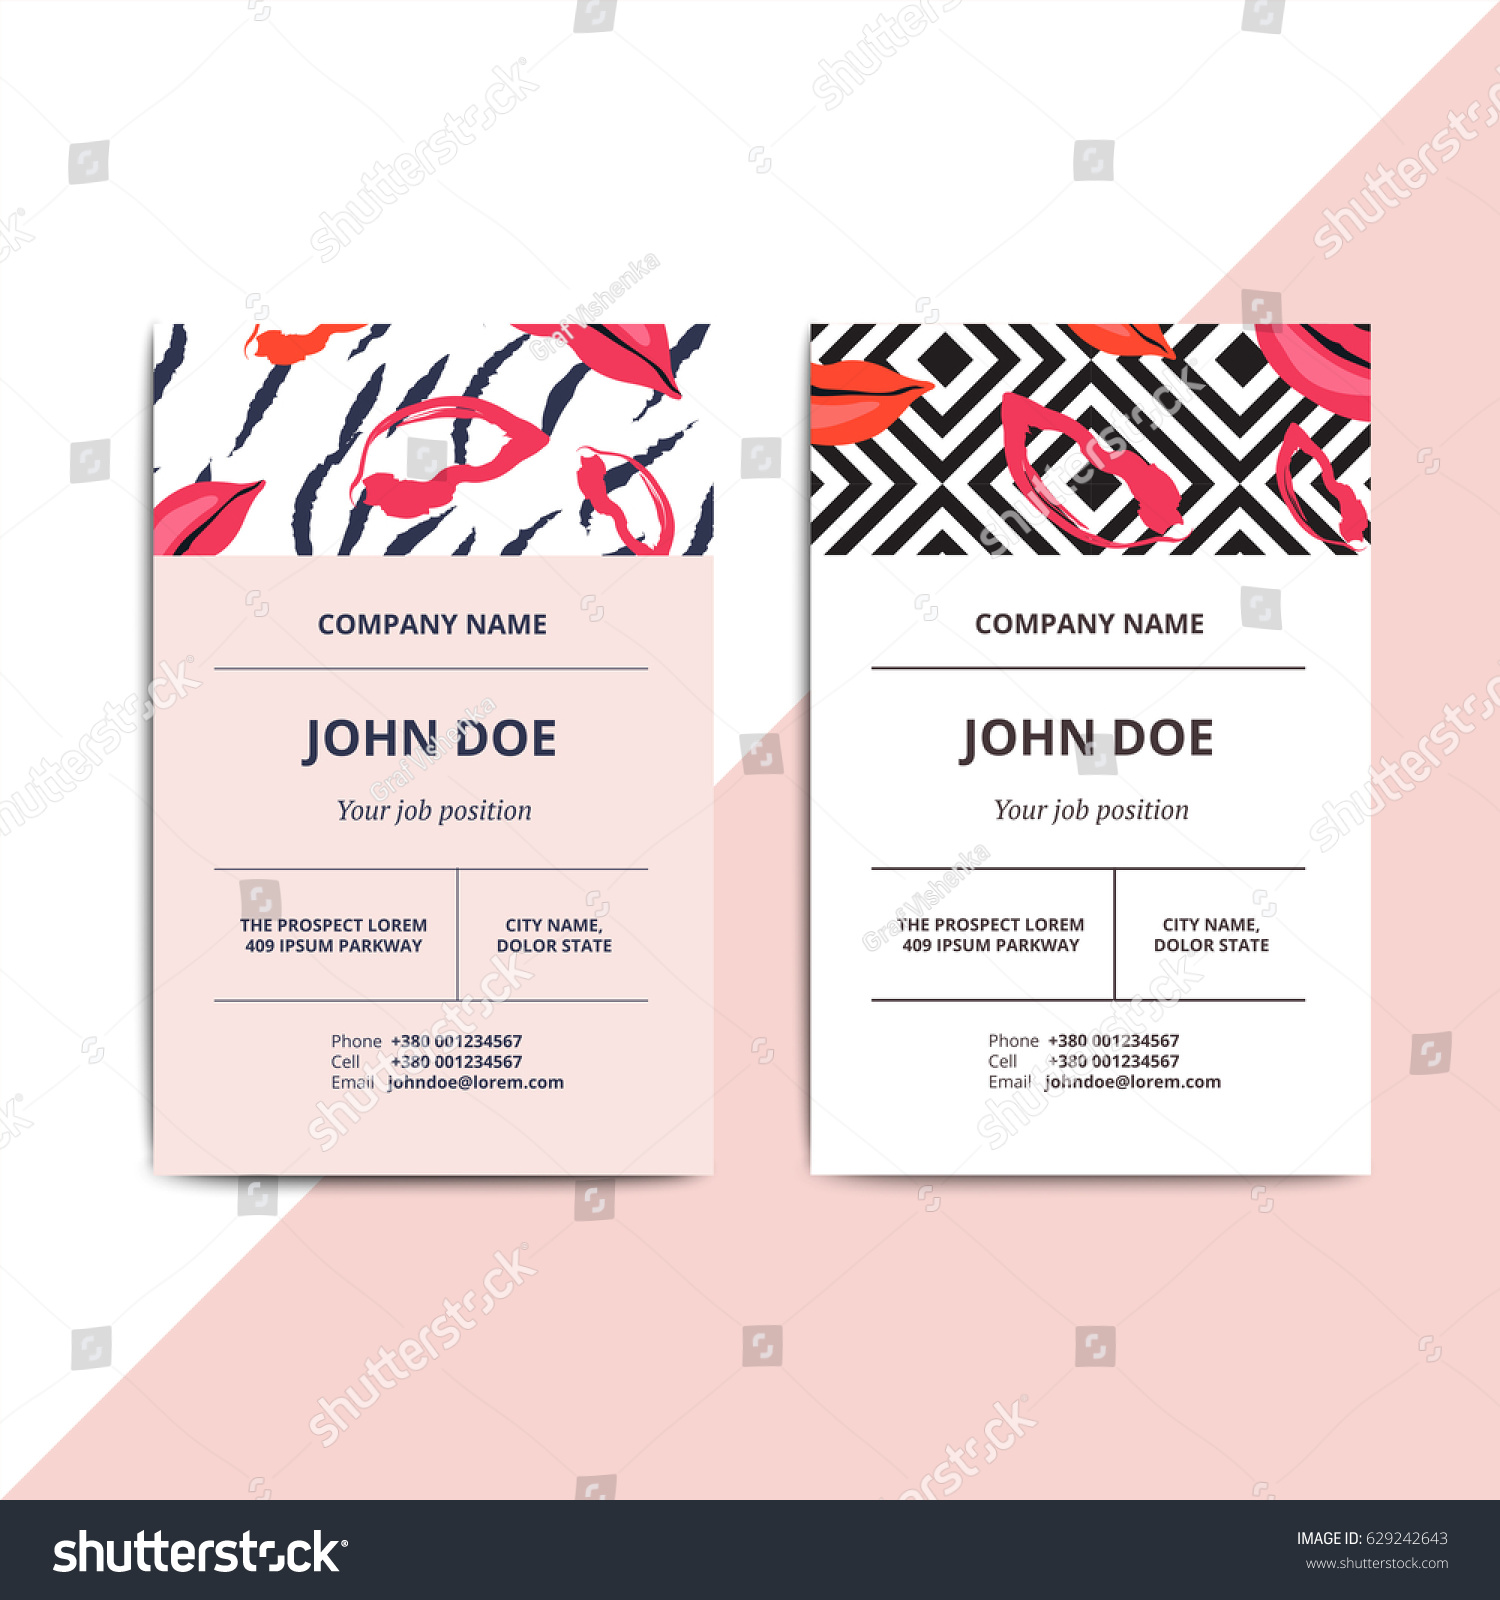 Trendy abstract business card templates modern stock vector trendy abstract business card templates modern luxury beauty salon or cosmetic shop layout with artistic magicingreecefo Images